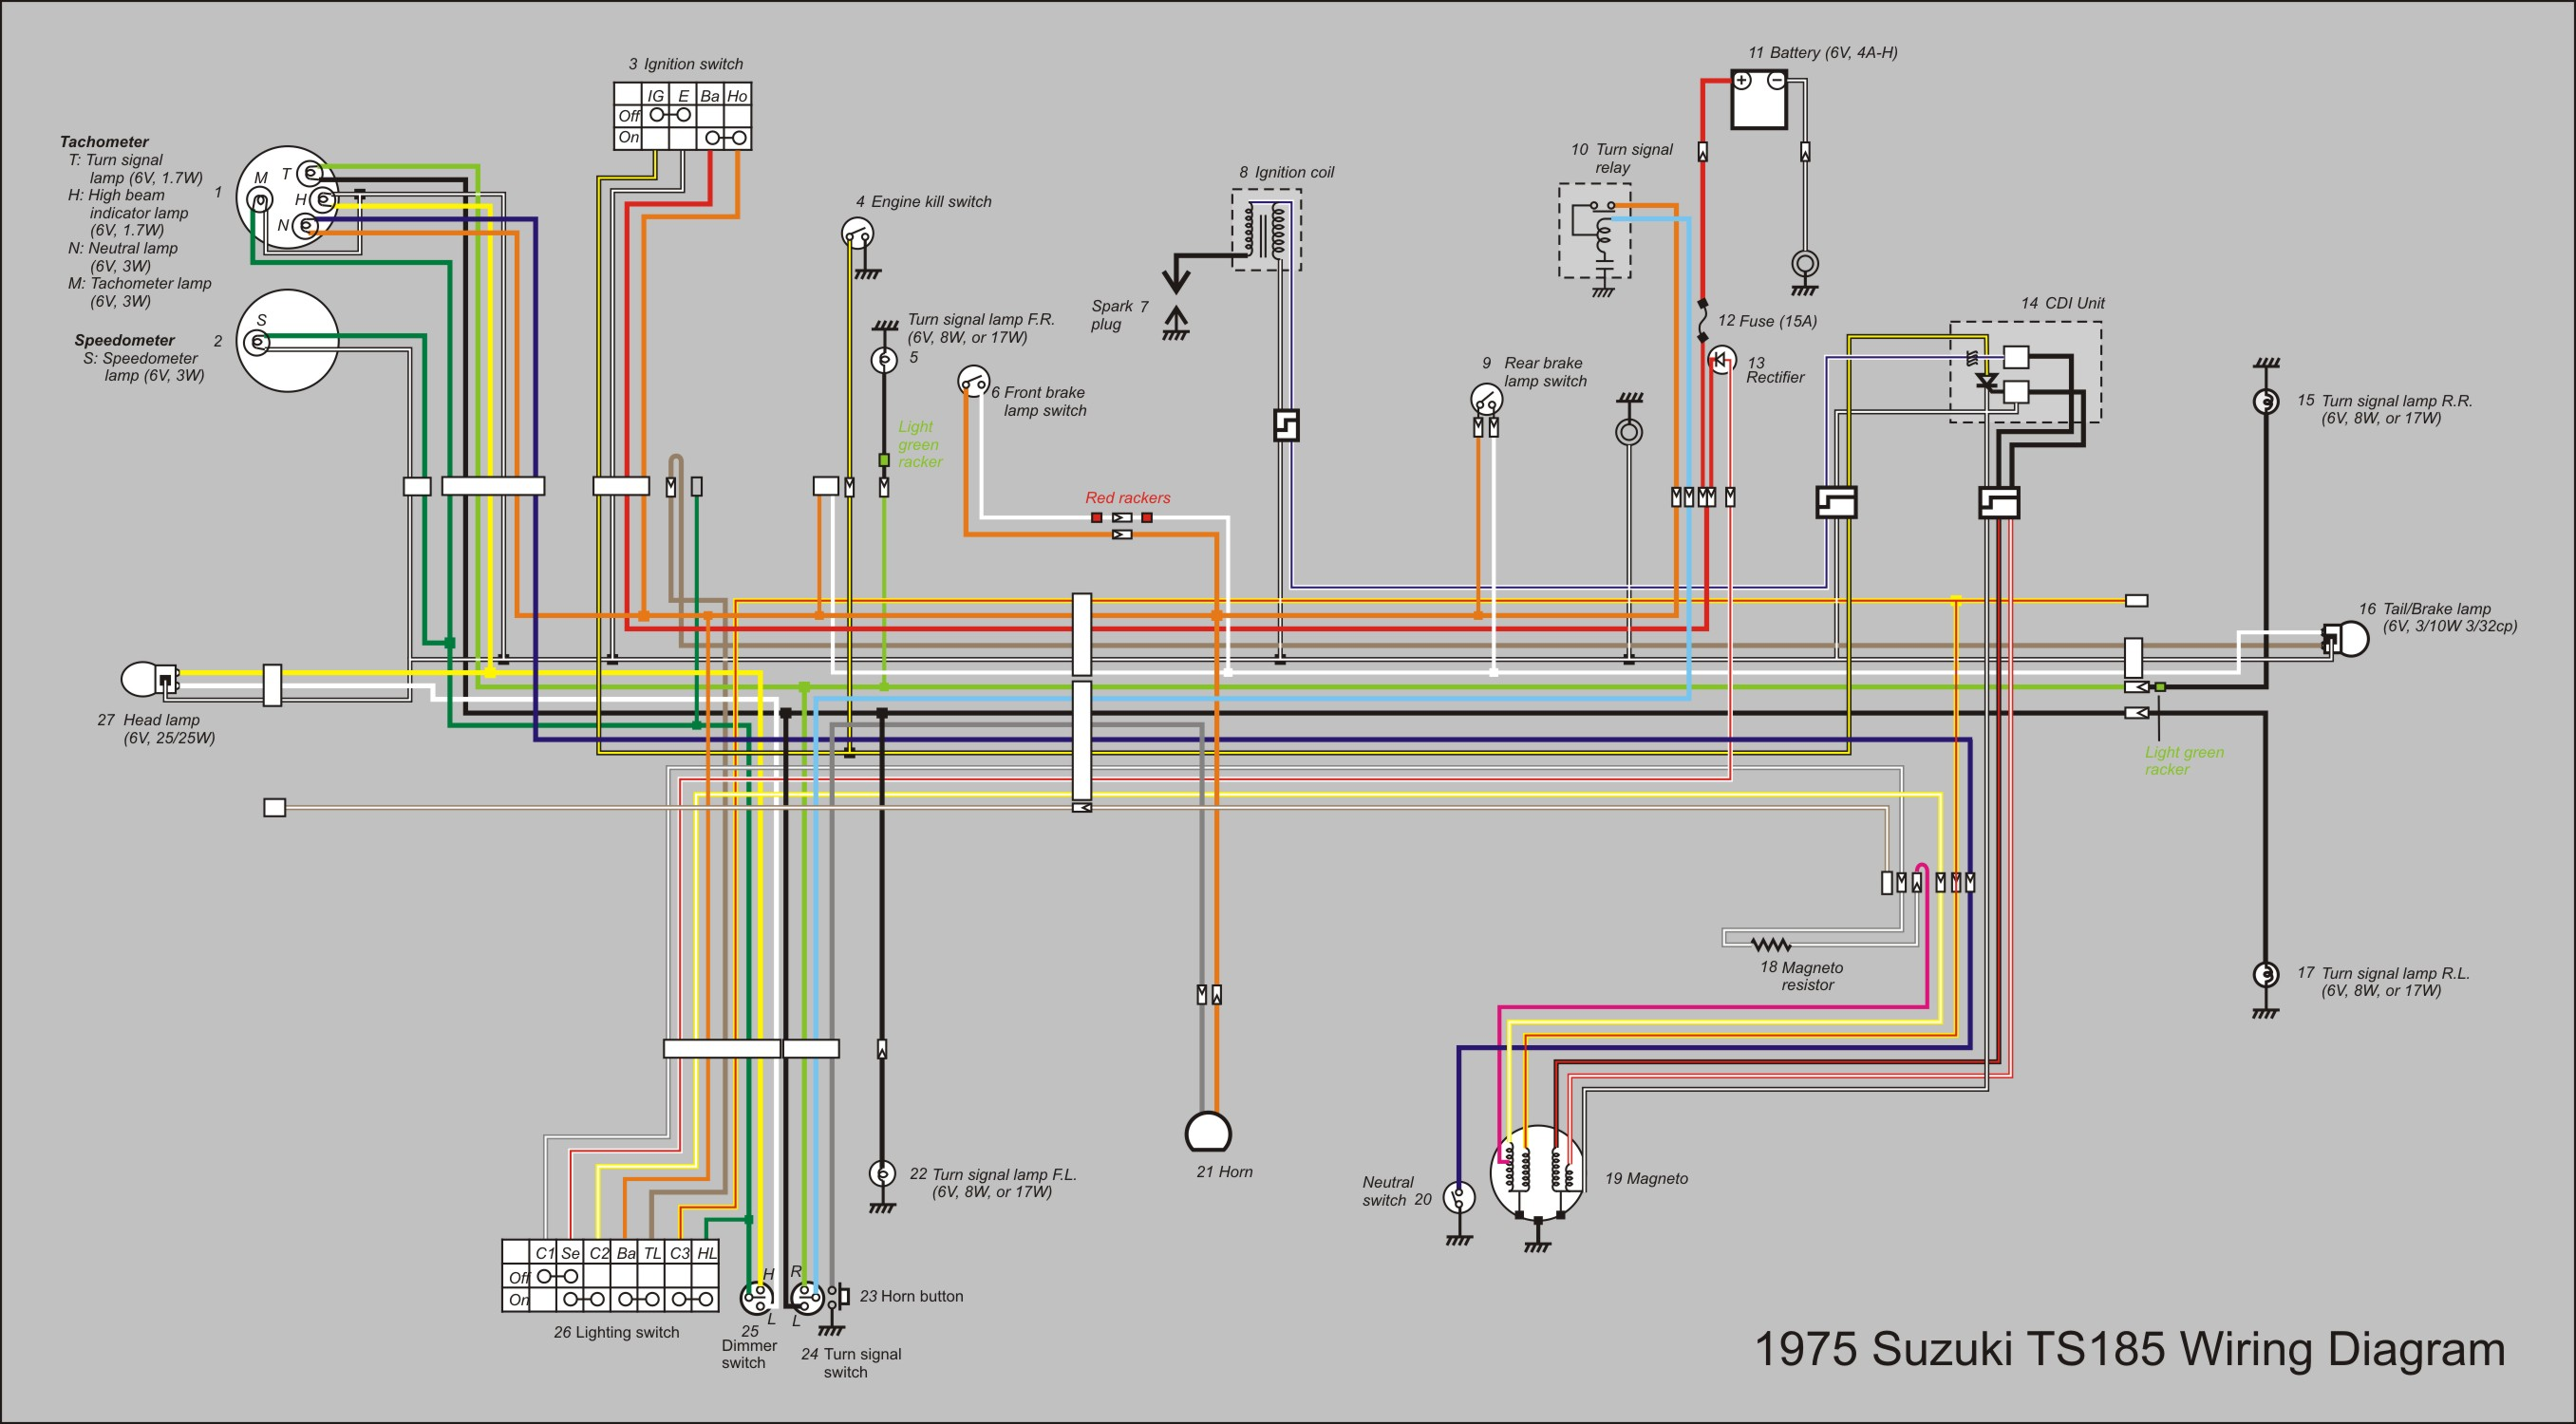 Filets185 Wiring Diagram New Wikimedia Commons Electrical